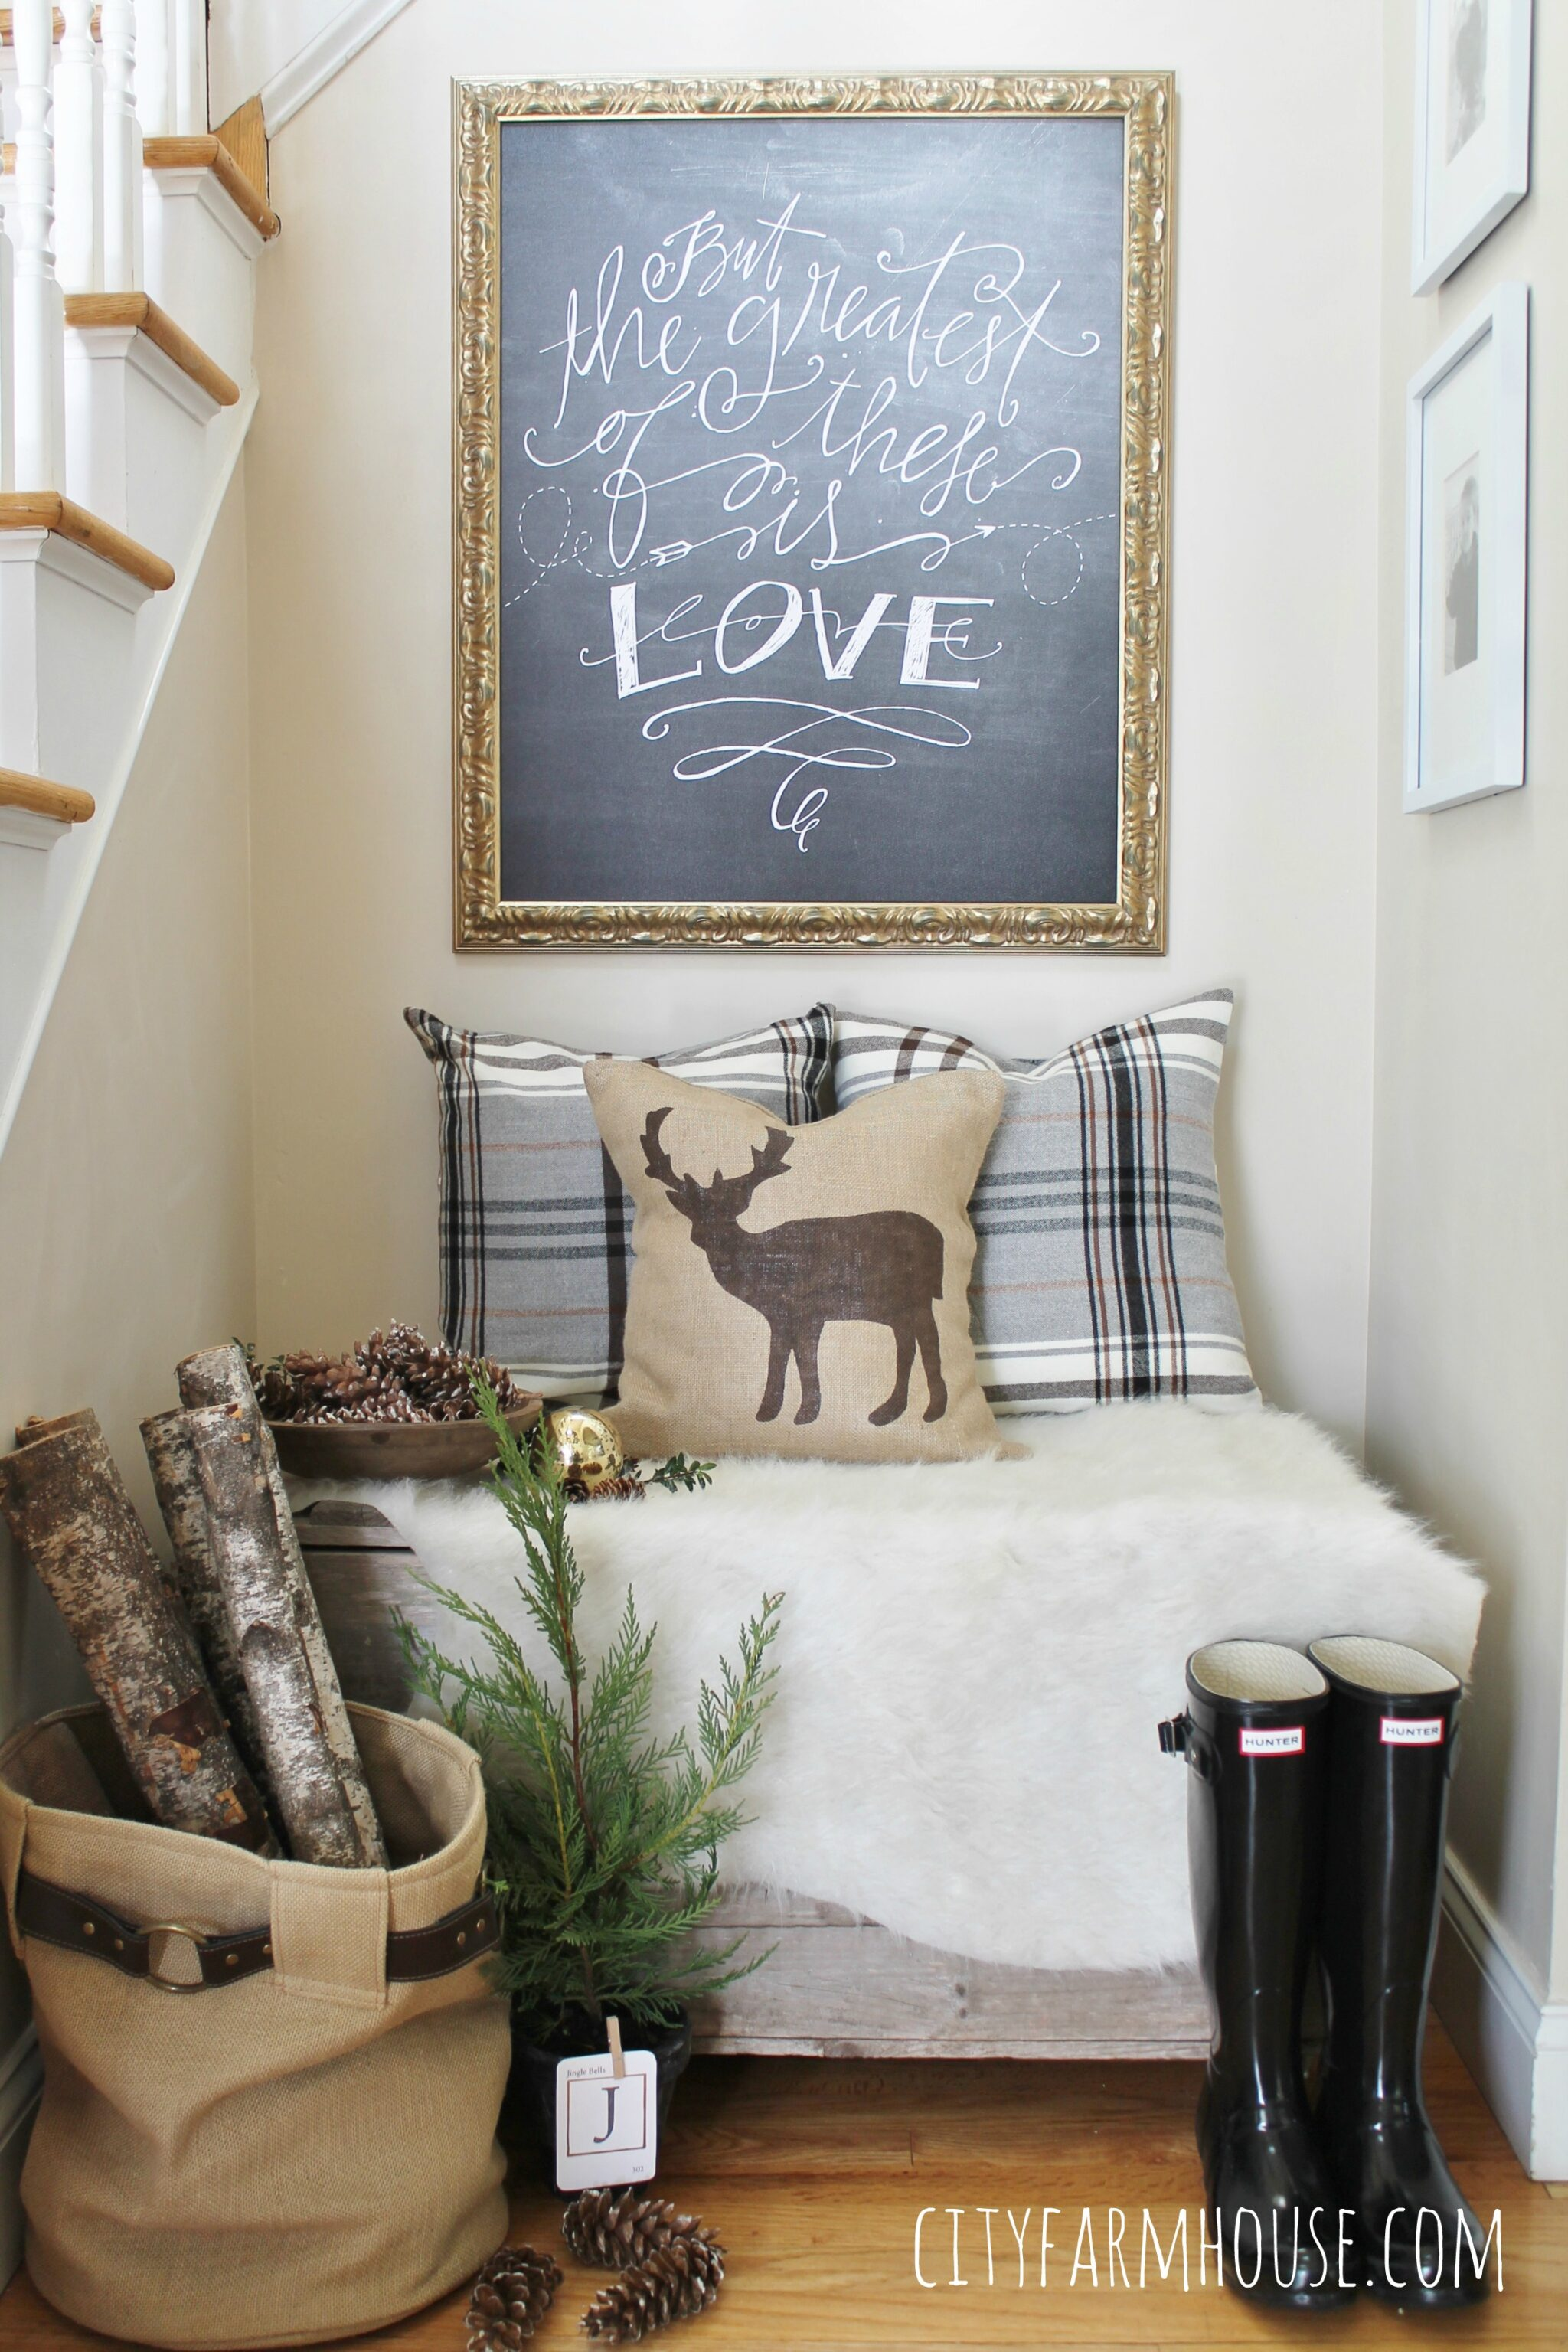 Home Decorating Ideas Farmhouse Nice 99 Modern Farmhouse: Creating A Cozy Nook